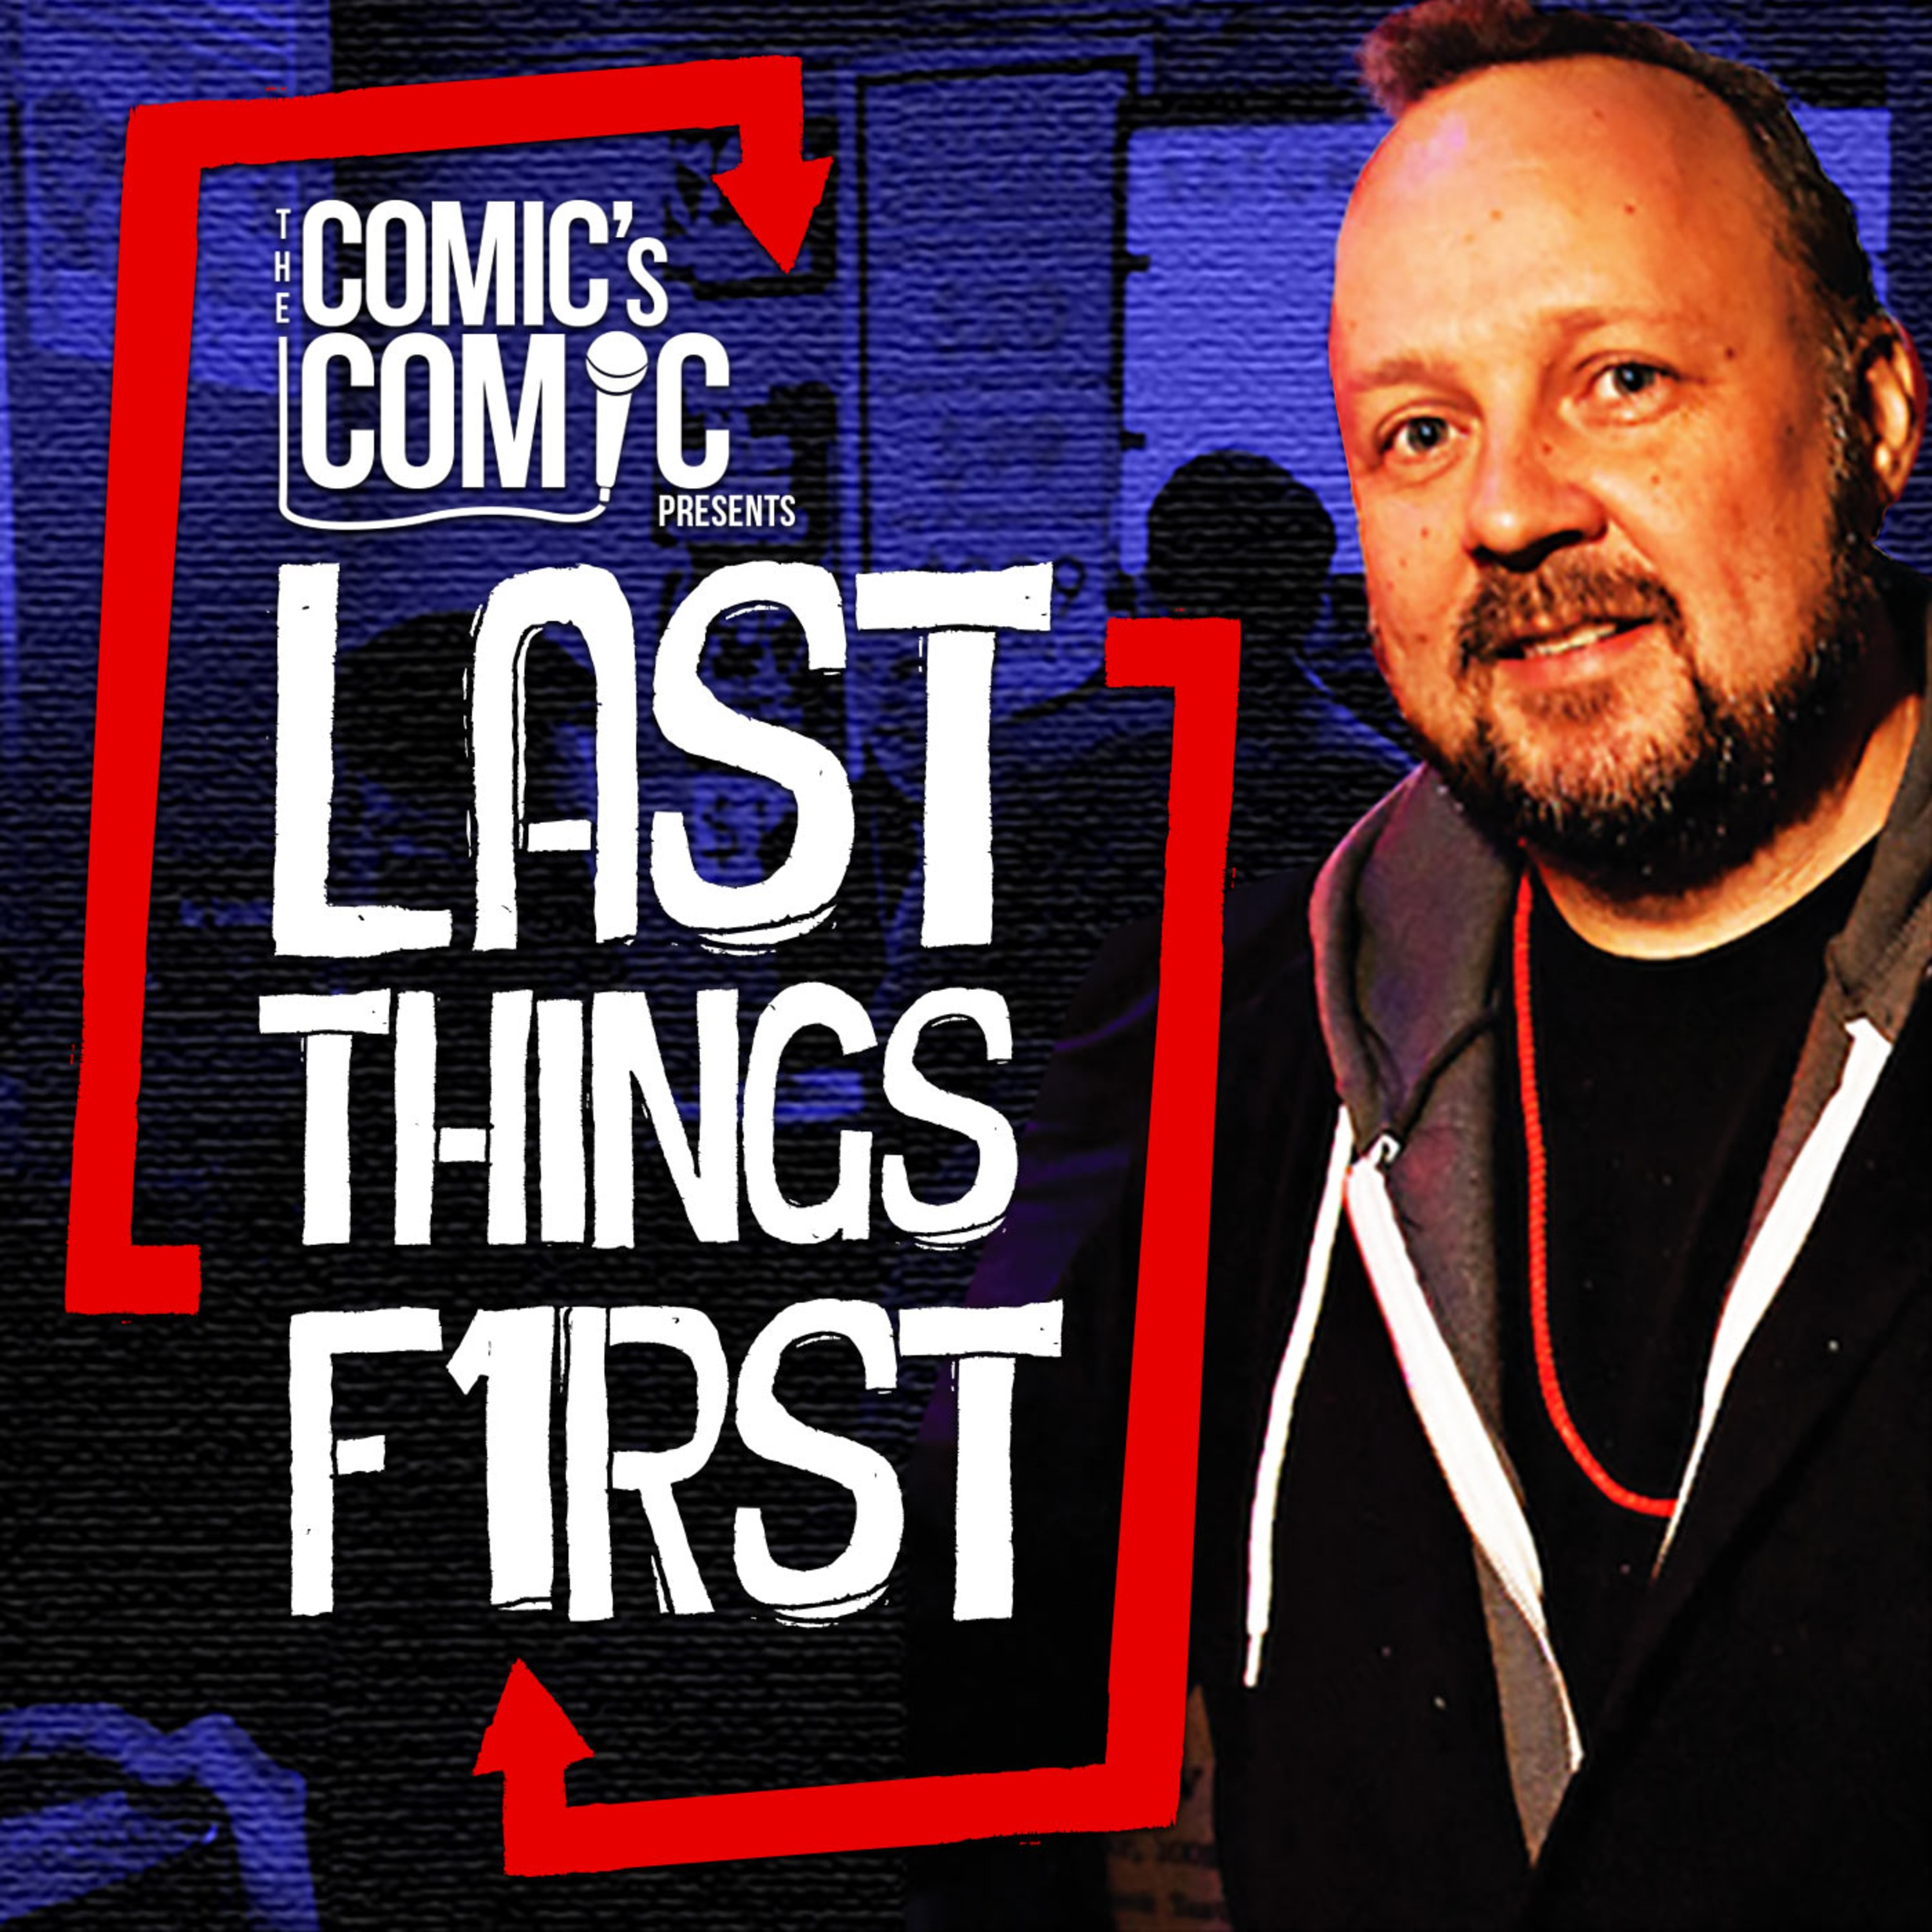 The Comic's Comic Presents Last Things First